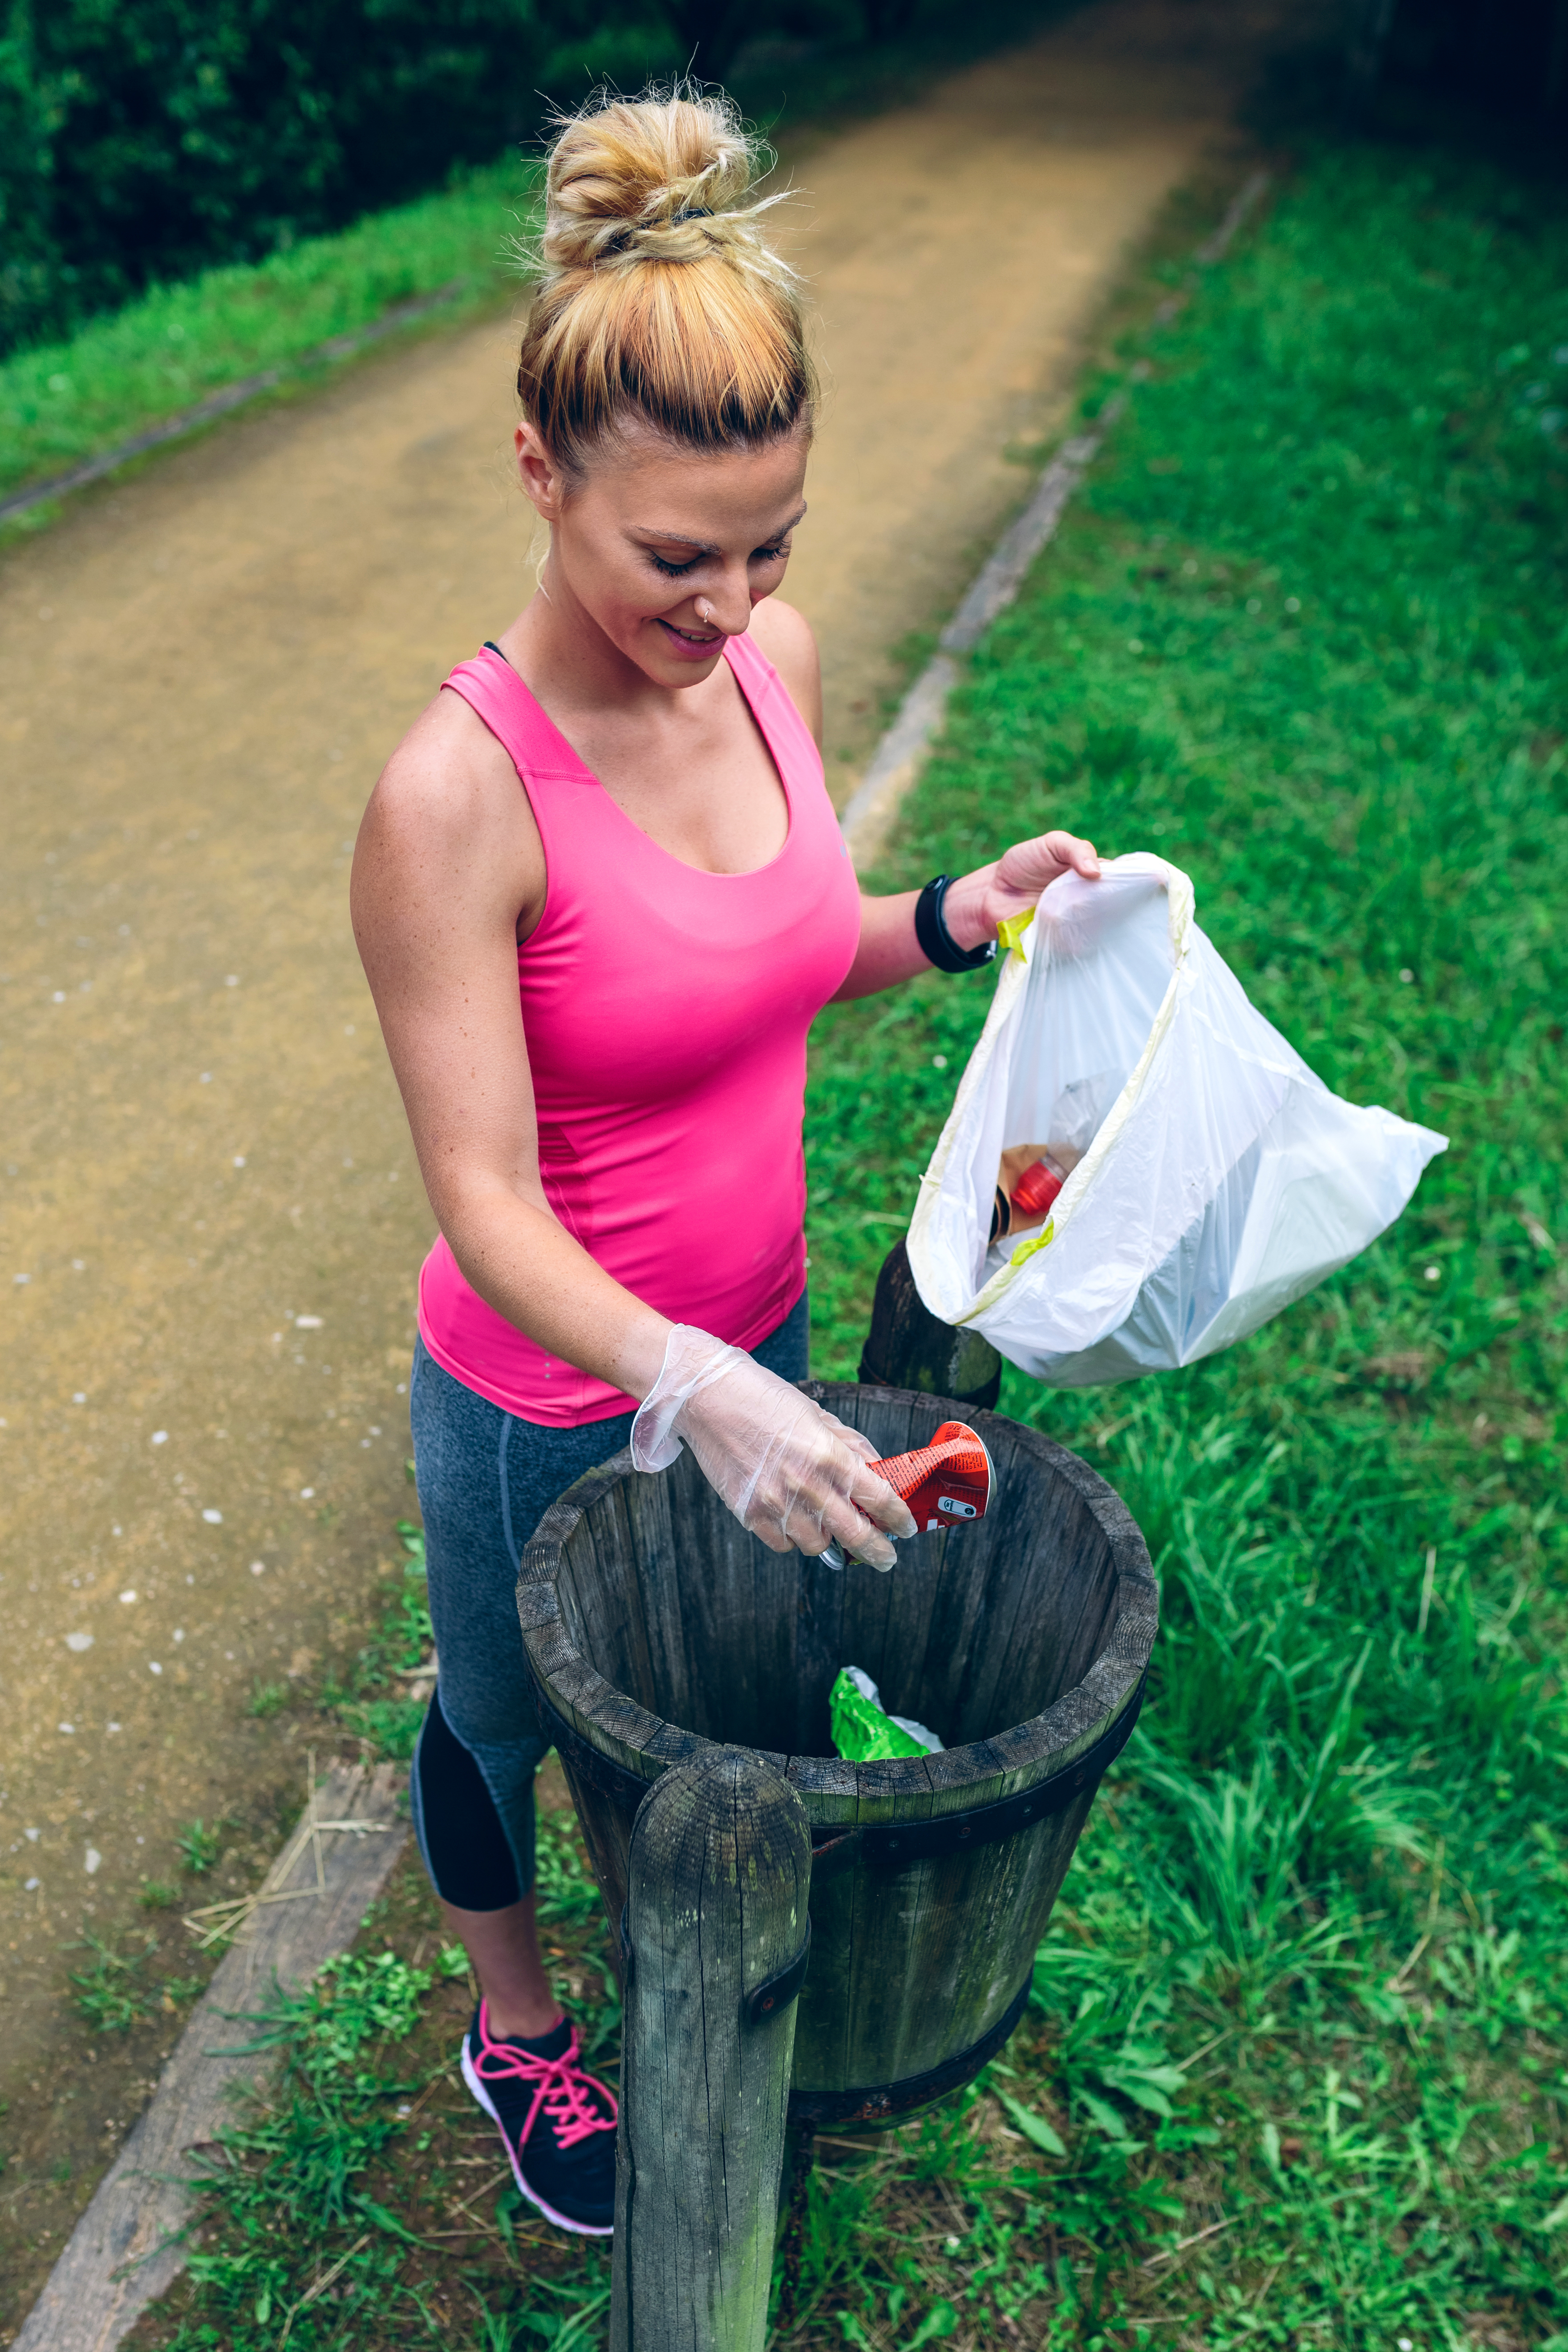 Local councils are spreading the word to 'unbag your